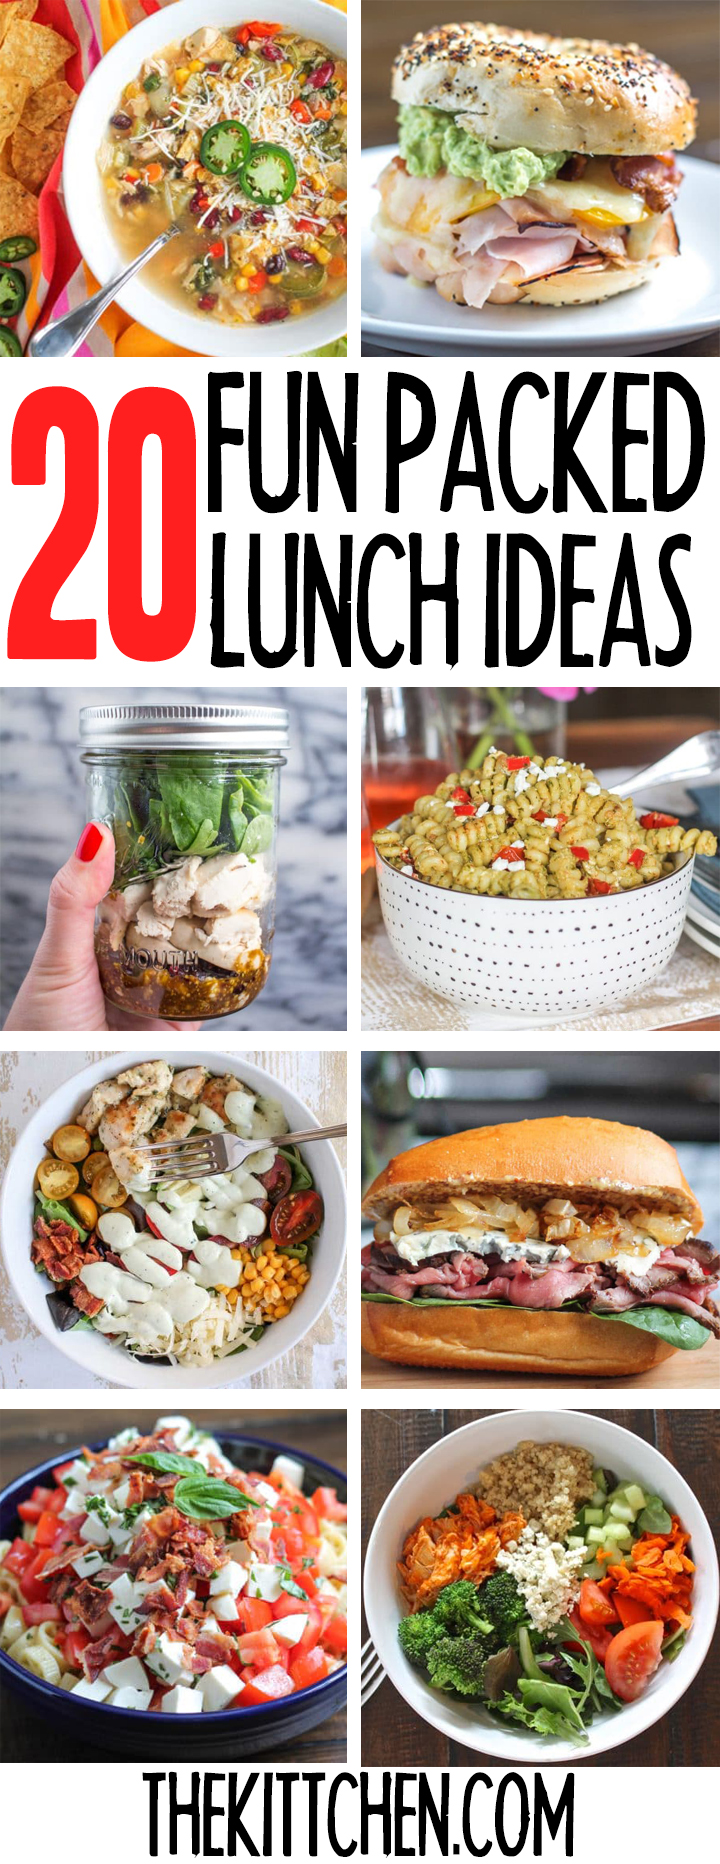 20 Fun Packed Lunch Ideas